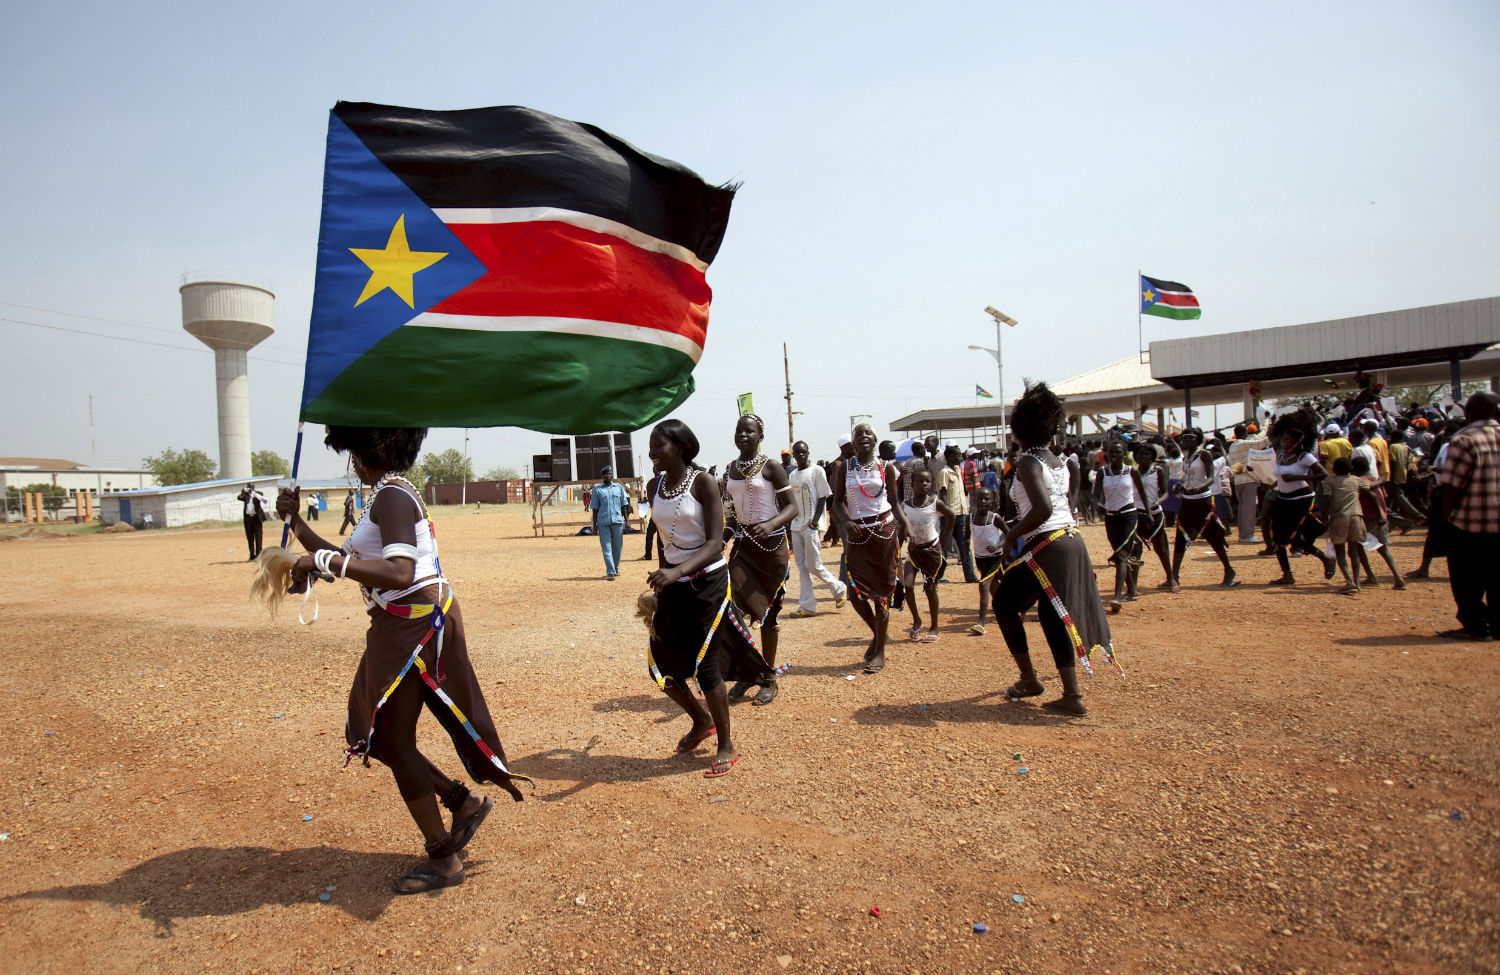 Southern-Sudanese-citizens-hold-their-flag-and-chant-slogans-as-they-march-in-the-streets-in-support-of-the-independence-referendum-in-Juba-South-Sudan-December-9-2010.-ReutersBenedicte-Desrus